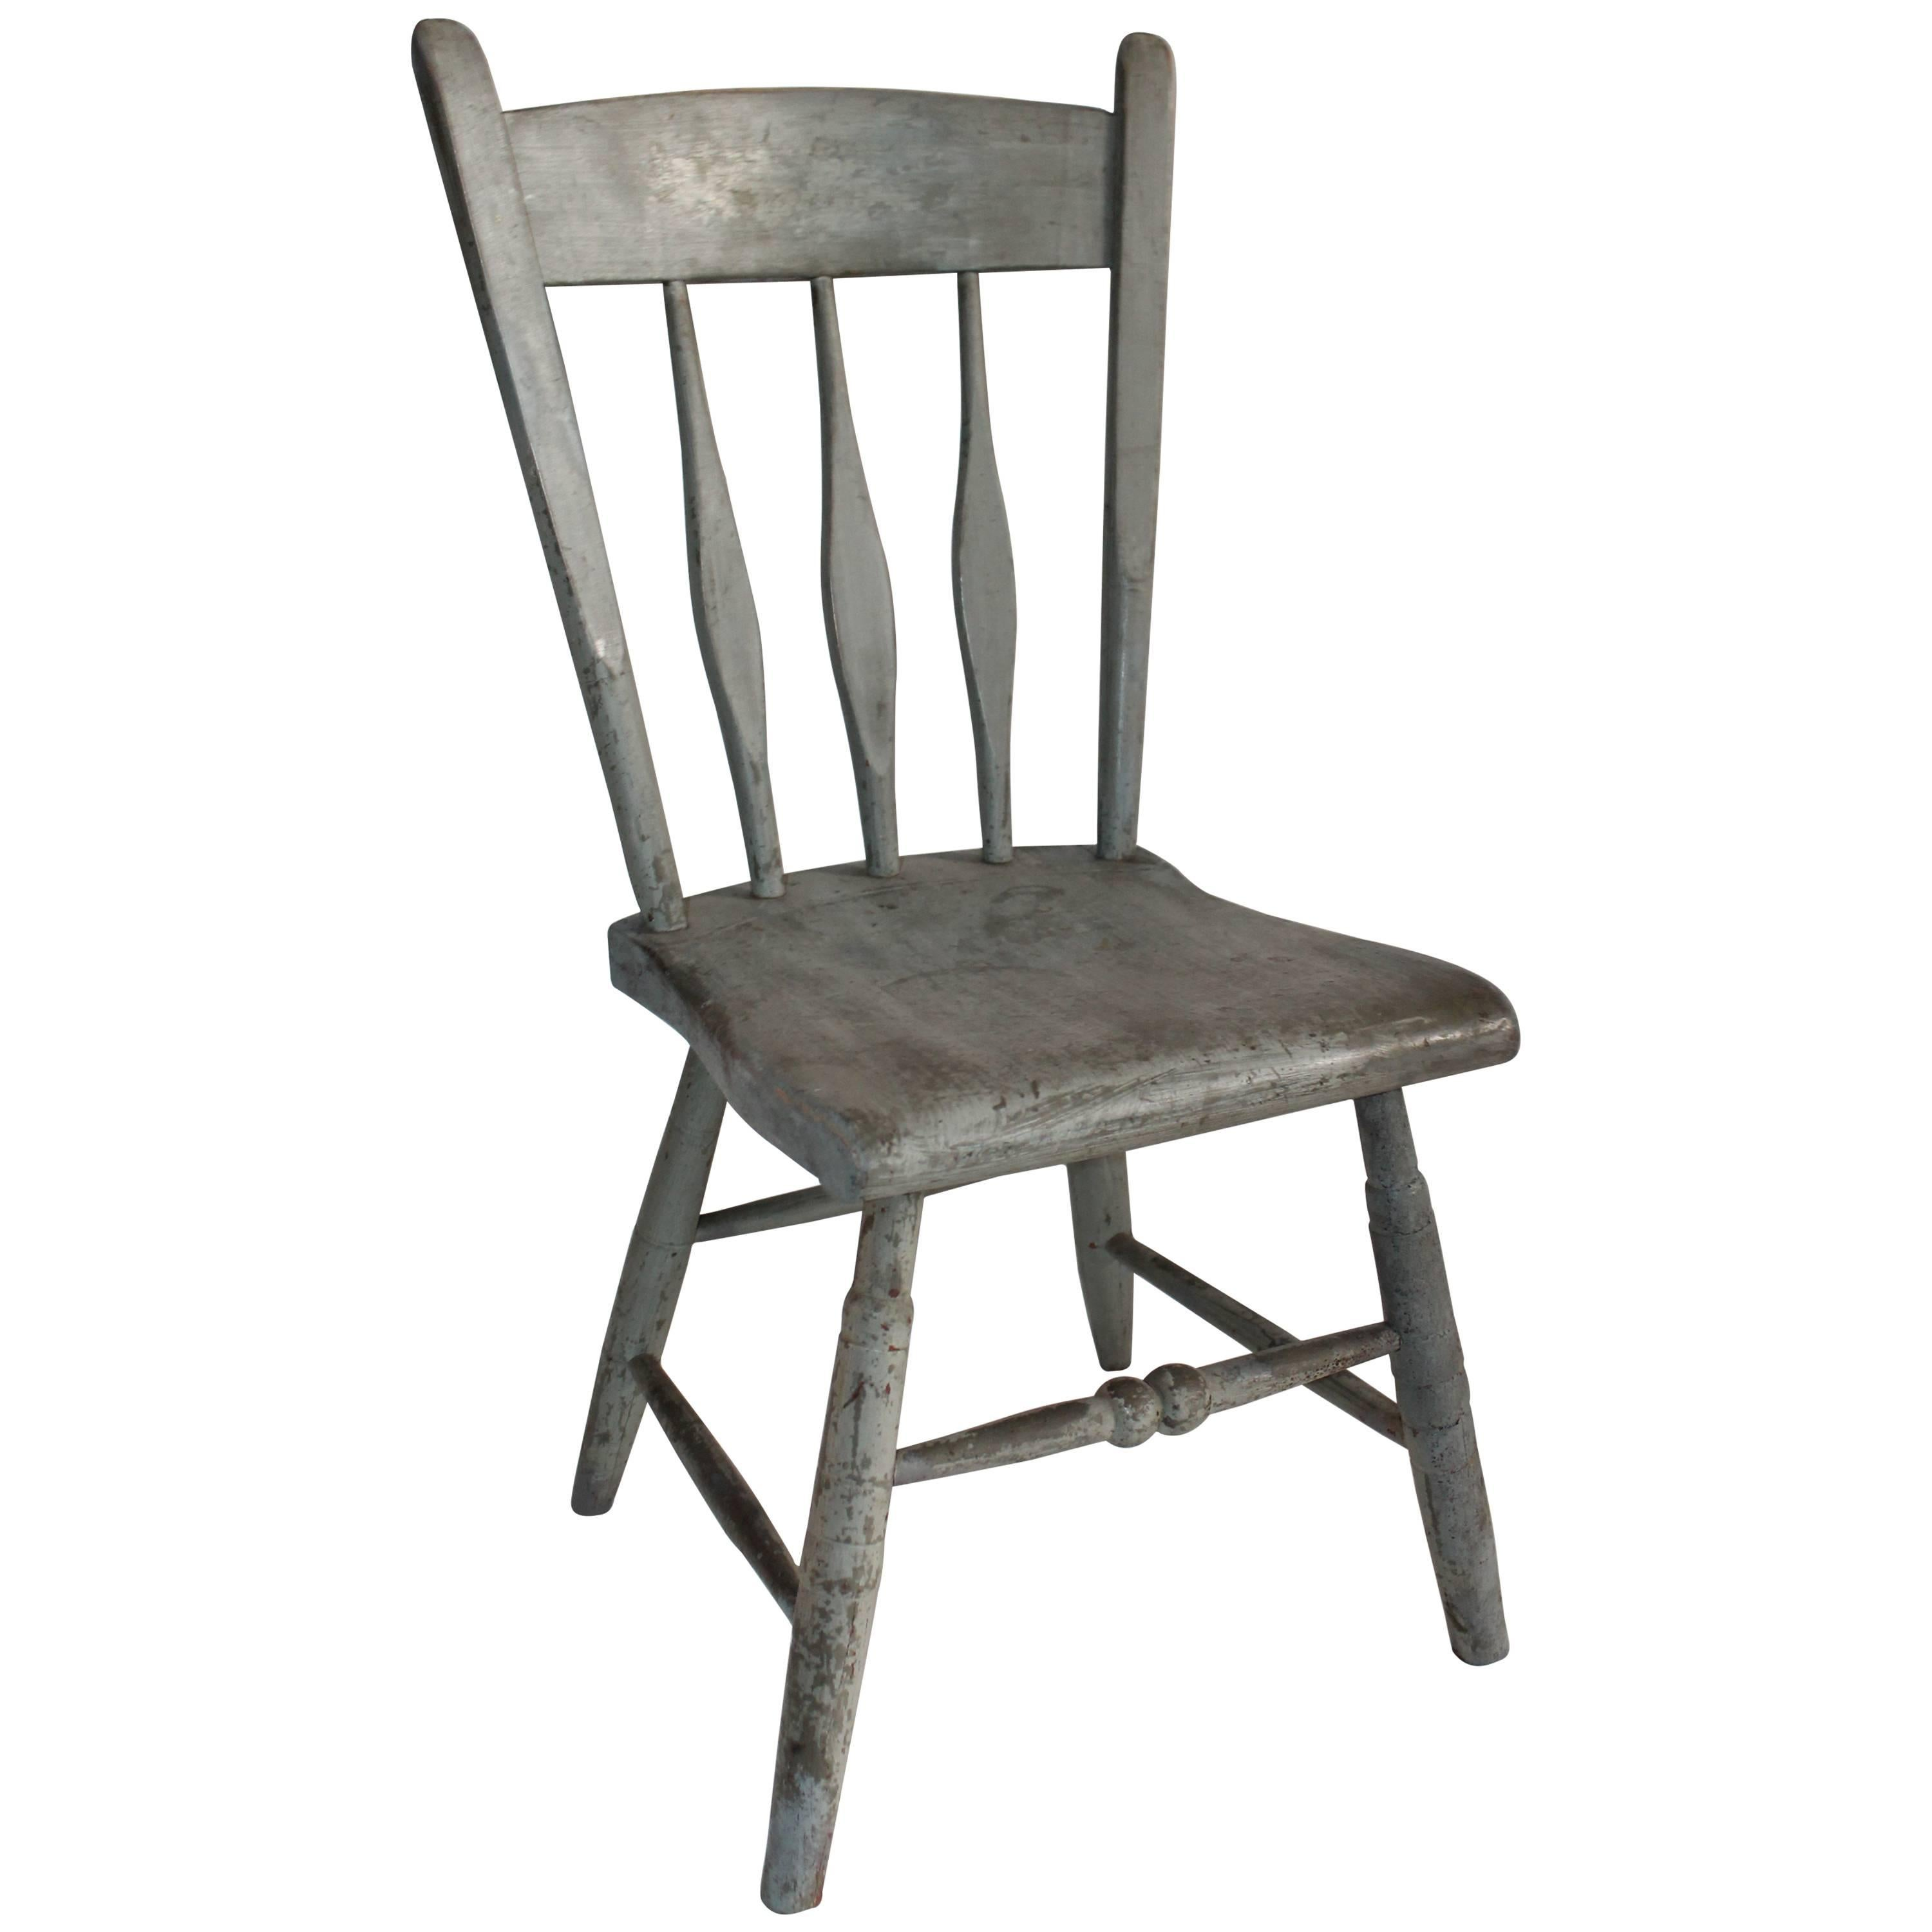 19th Century Original Painted New England Windor Childs Chair